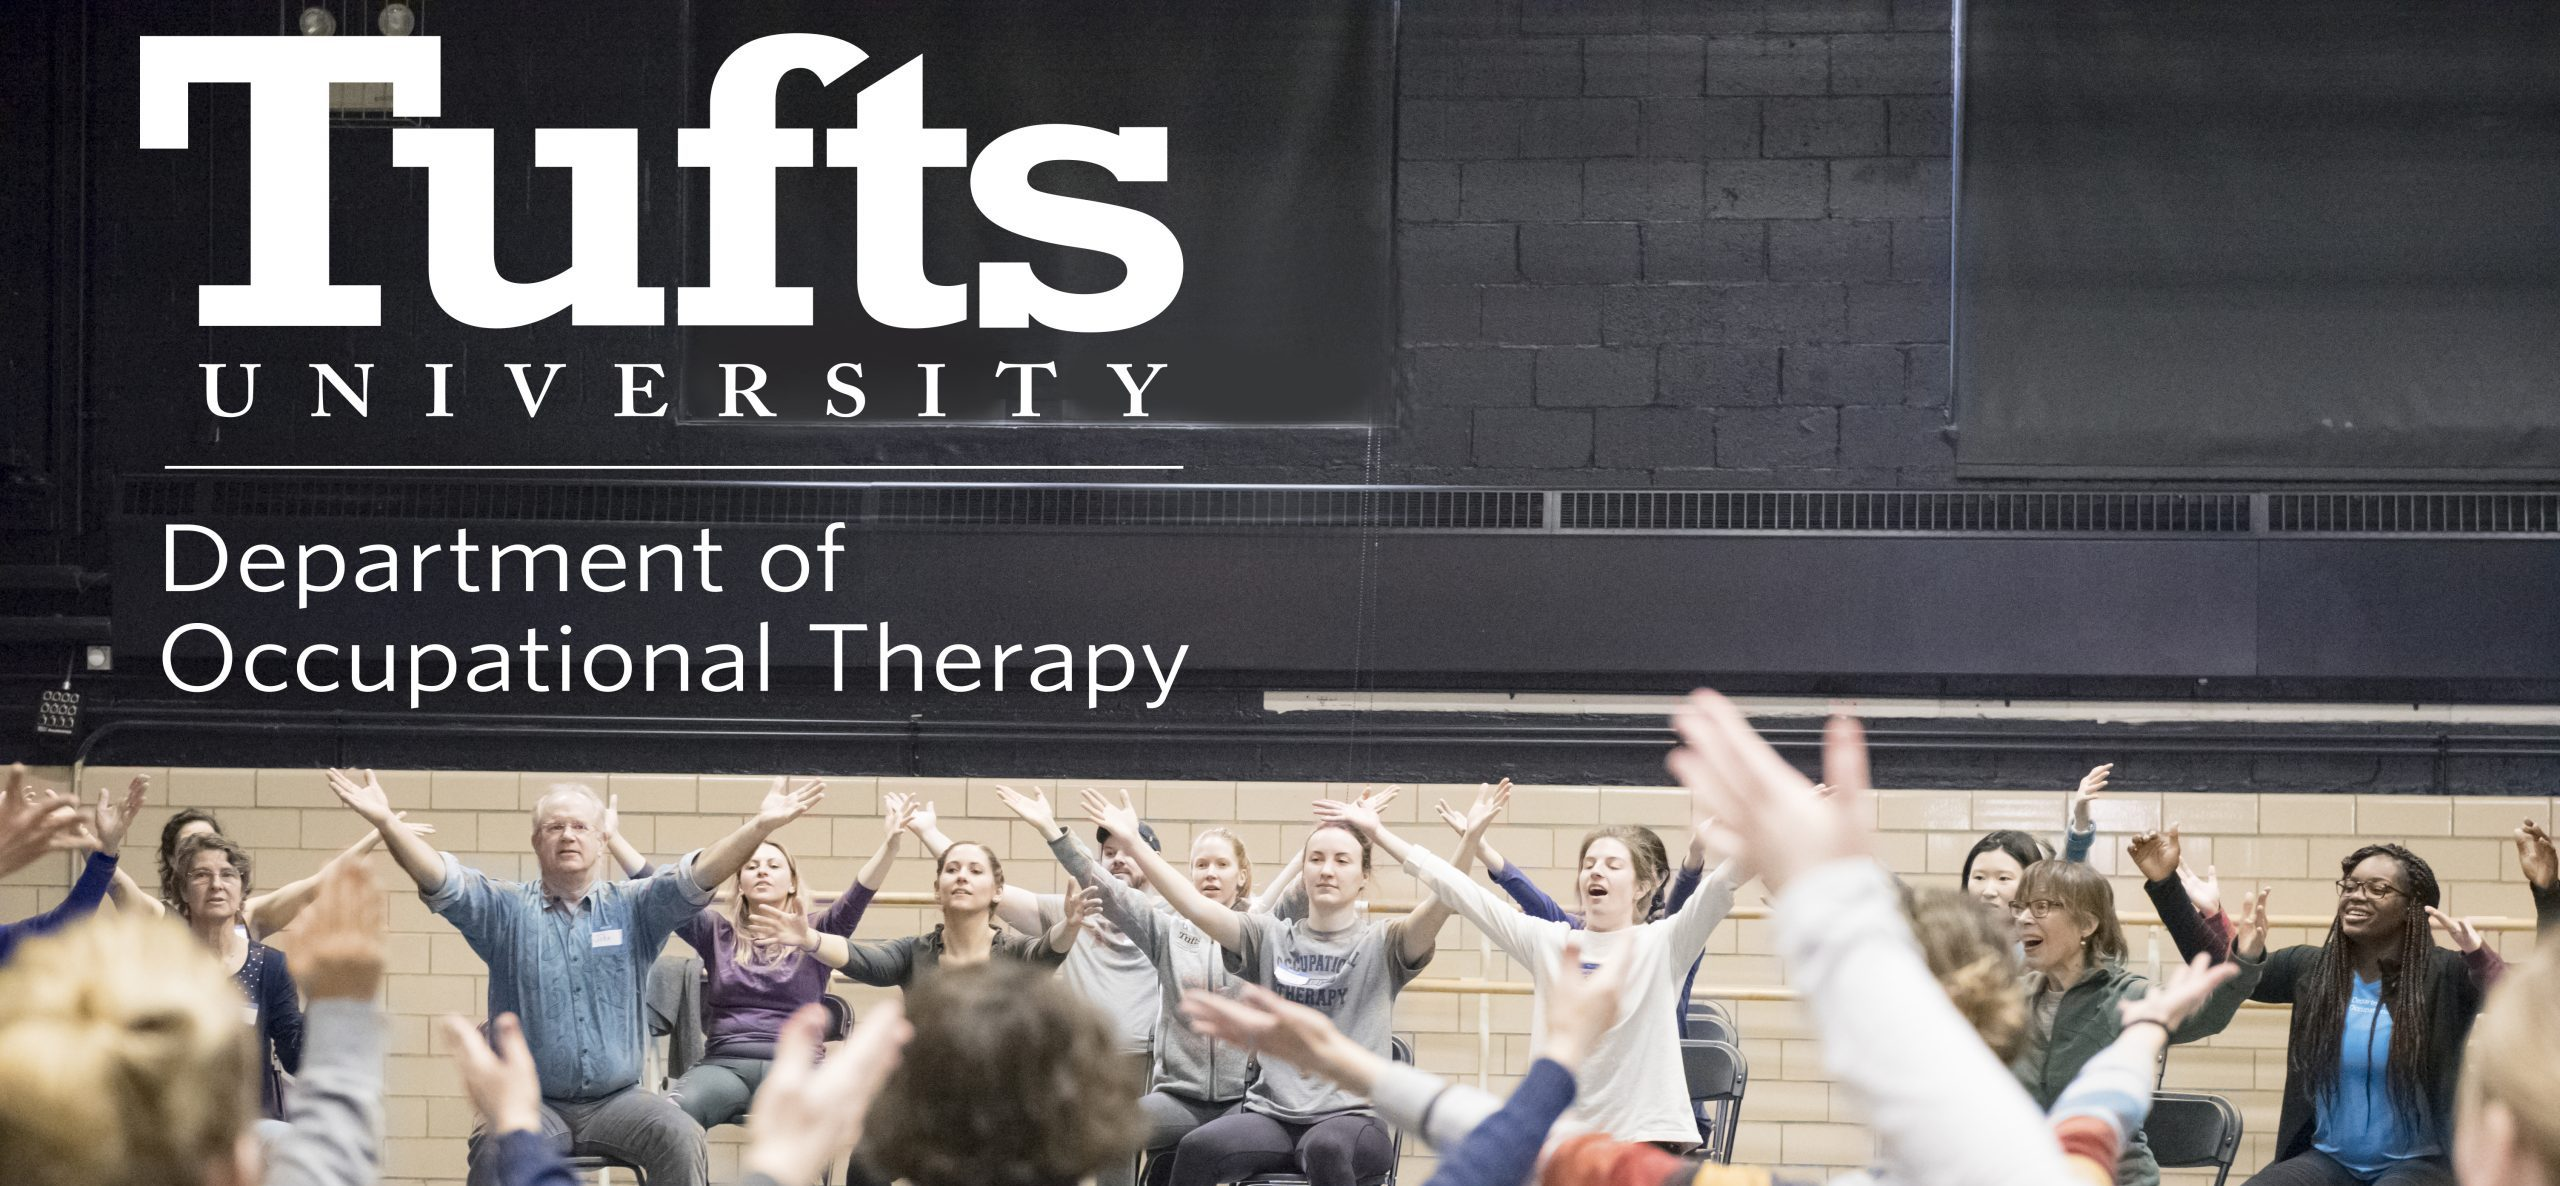 Tufts University Department of Occupational Therapy